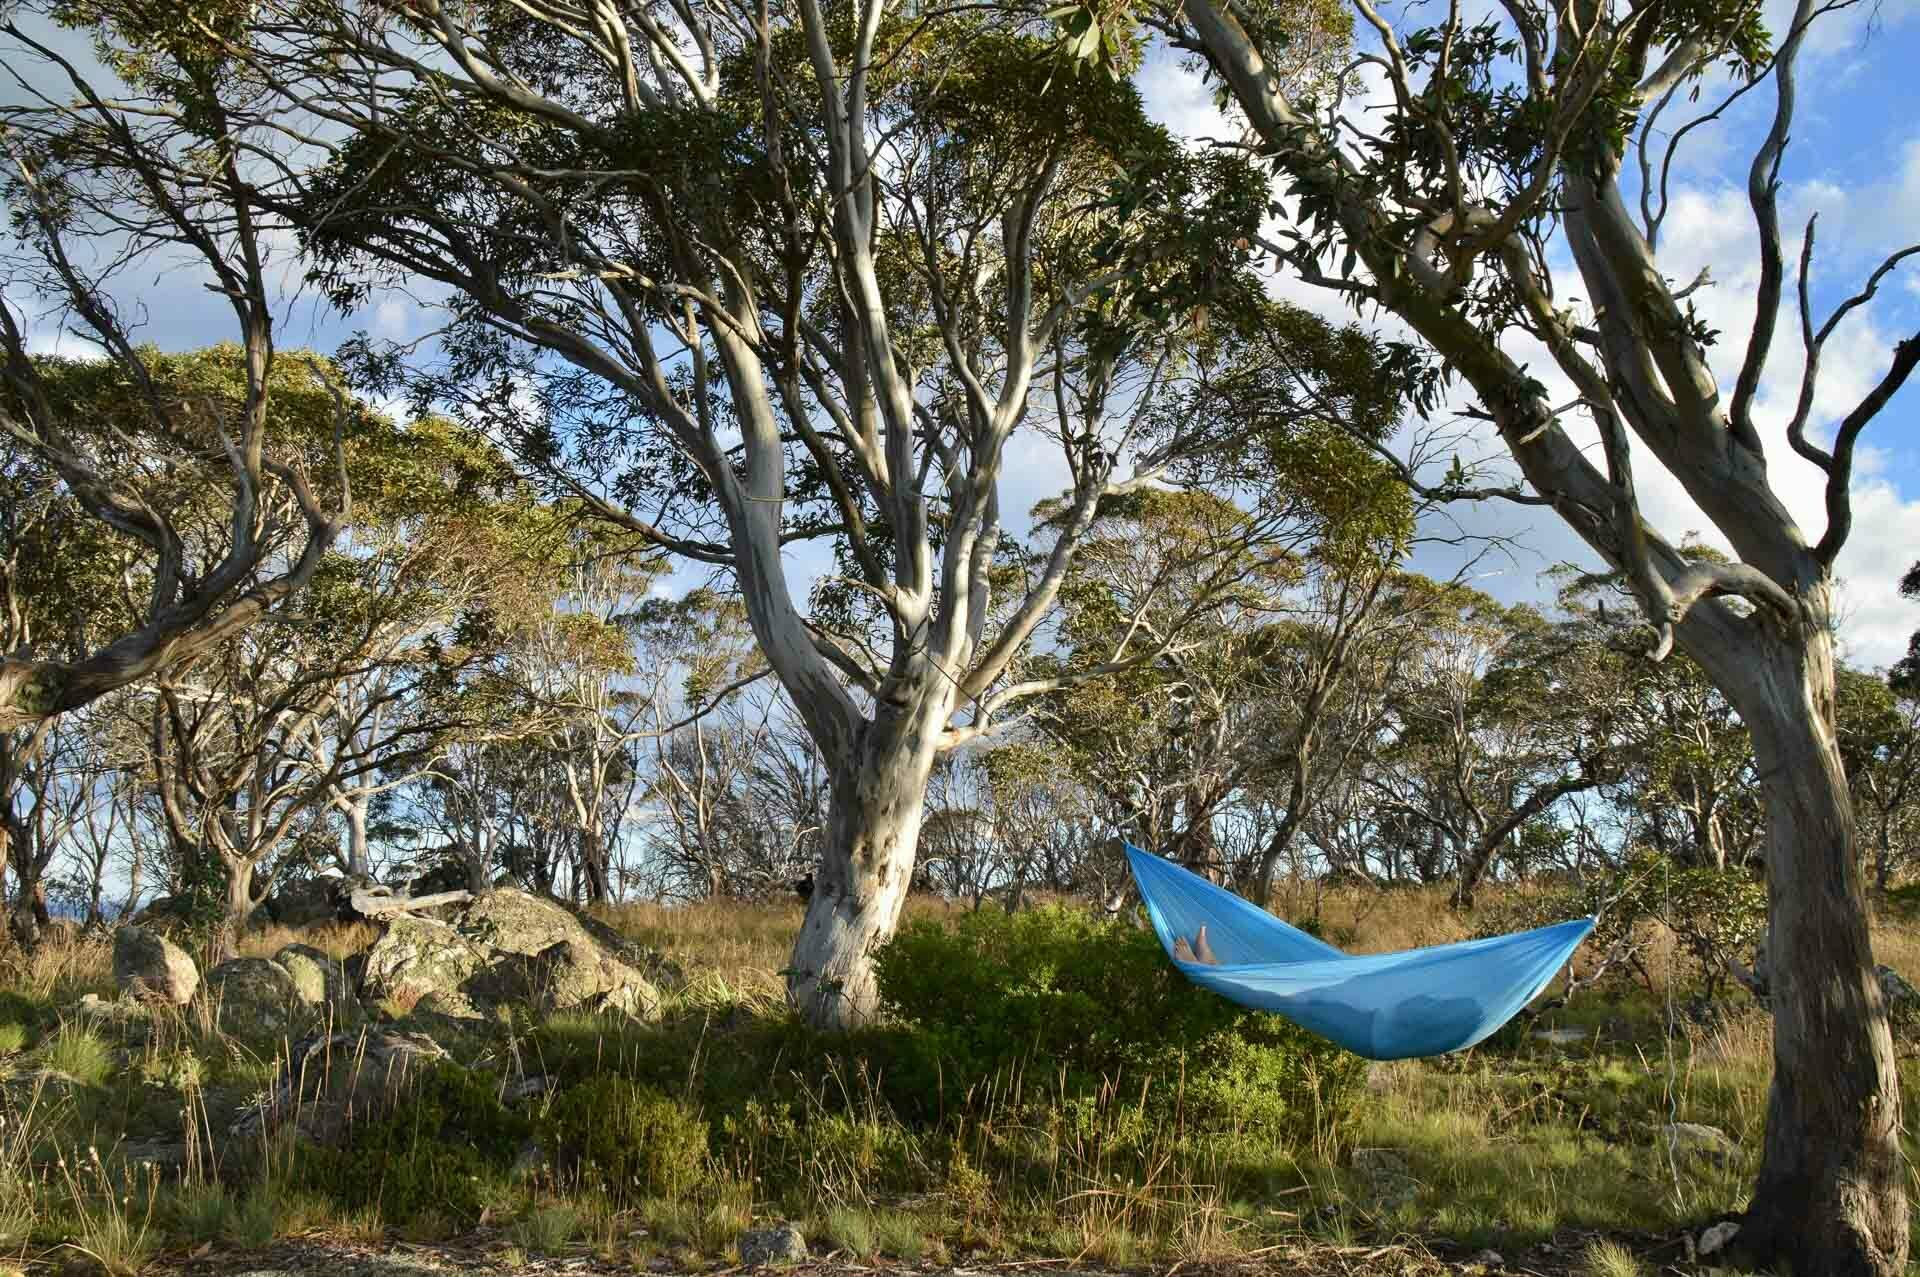 Pat enjoying relaxing in the hammock, Fast & Light – A Mt Gingera Overnight Hike in Under 24 Hours, Alice Wisse, ultralight, australian capital territory